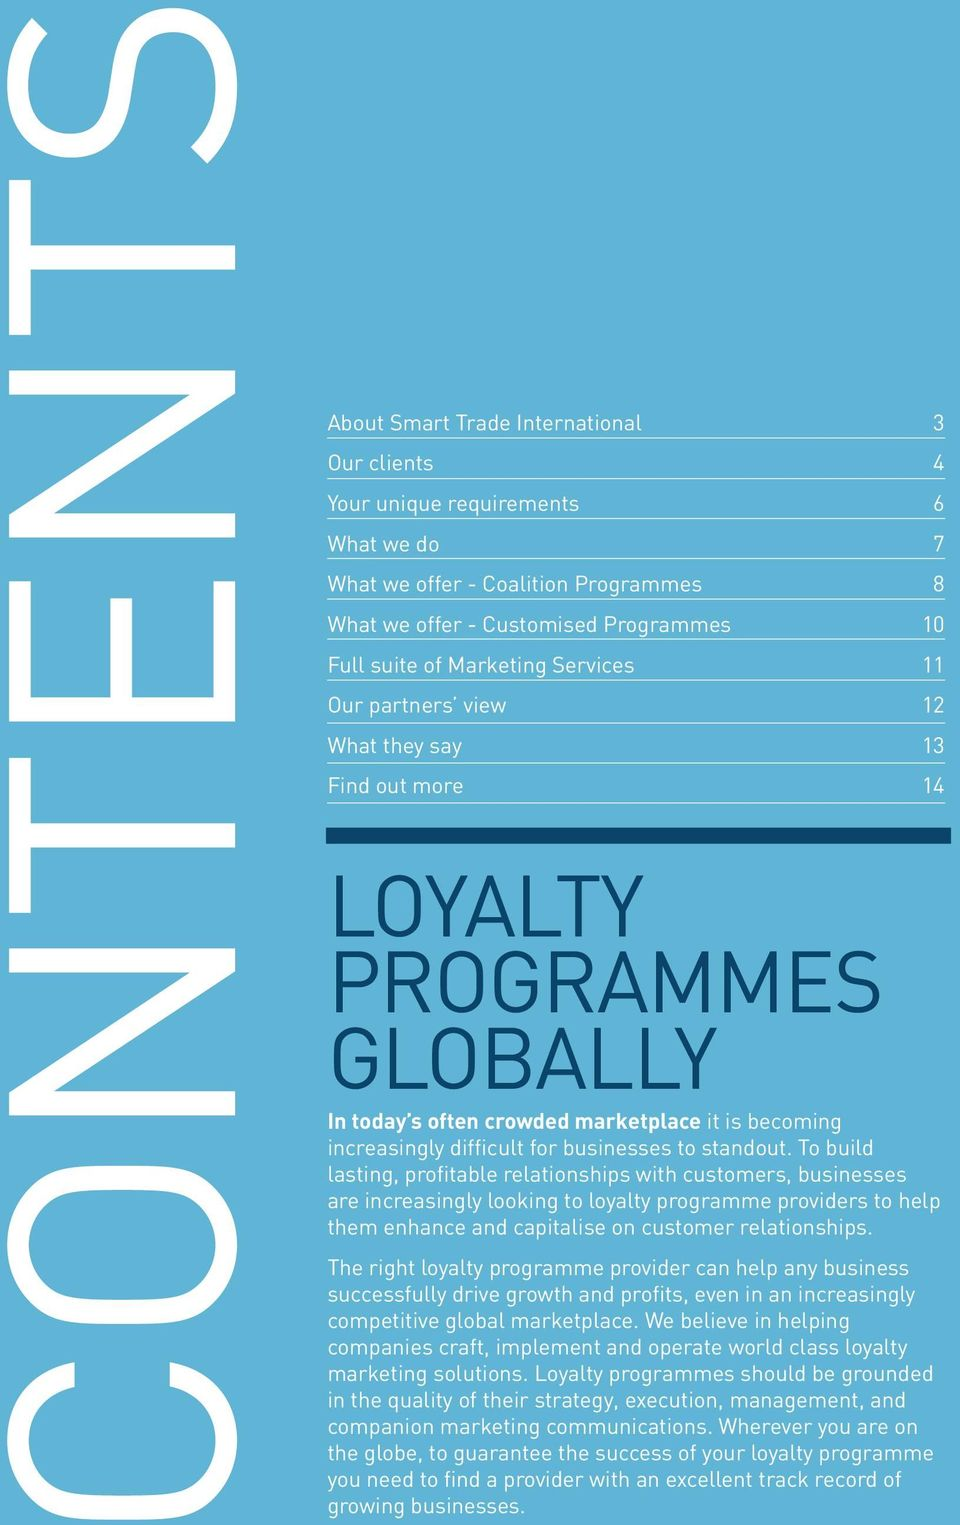 To build lasting, profitable relationships with customers, businesses are increasingly looking to loyalty programme providers to help them enhance and capitalise on customer relationships.